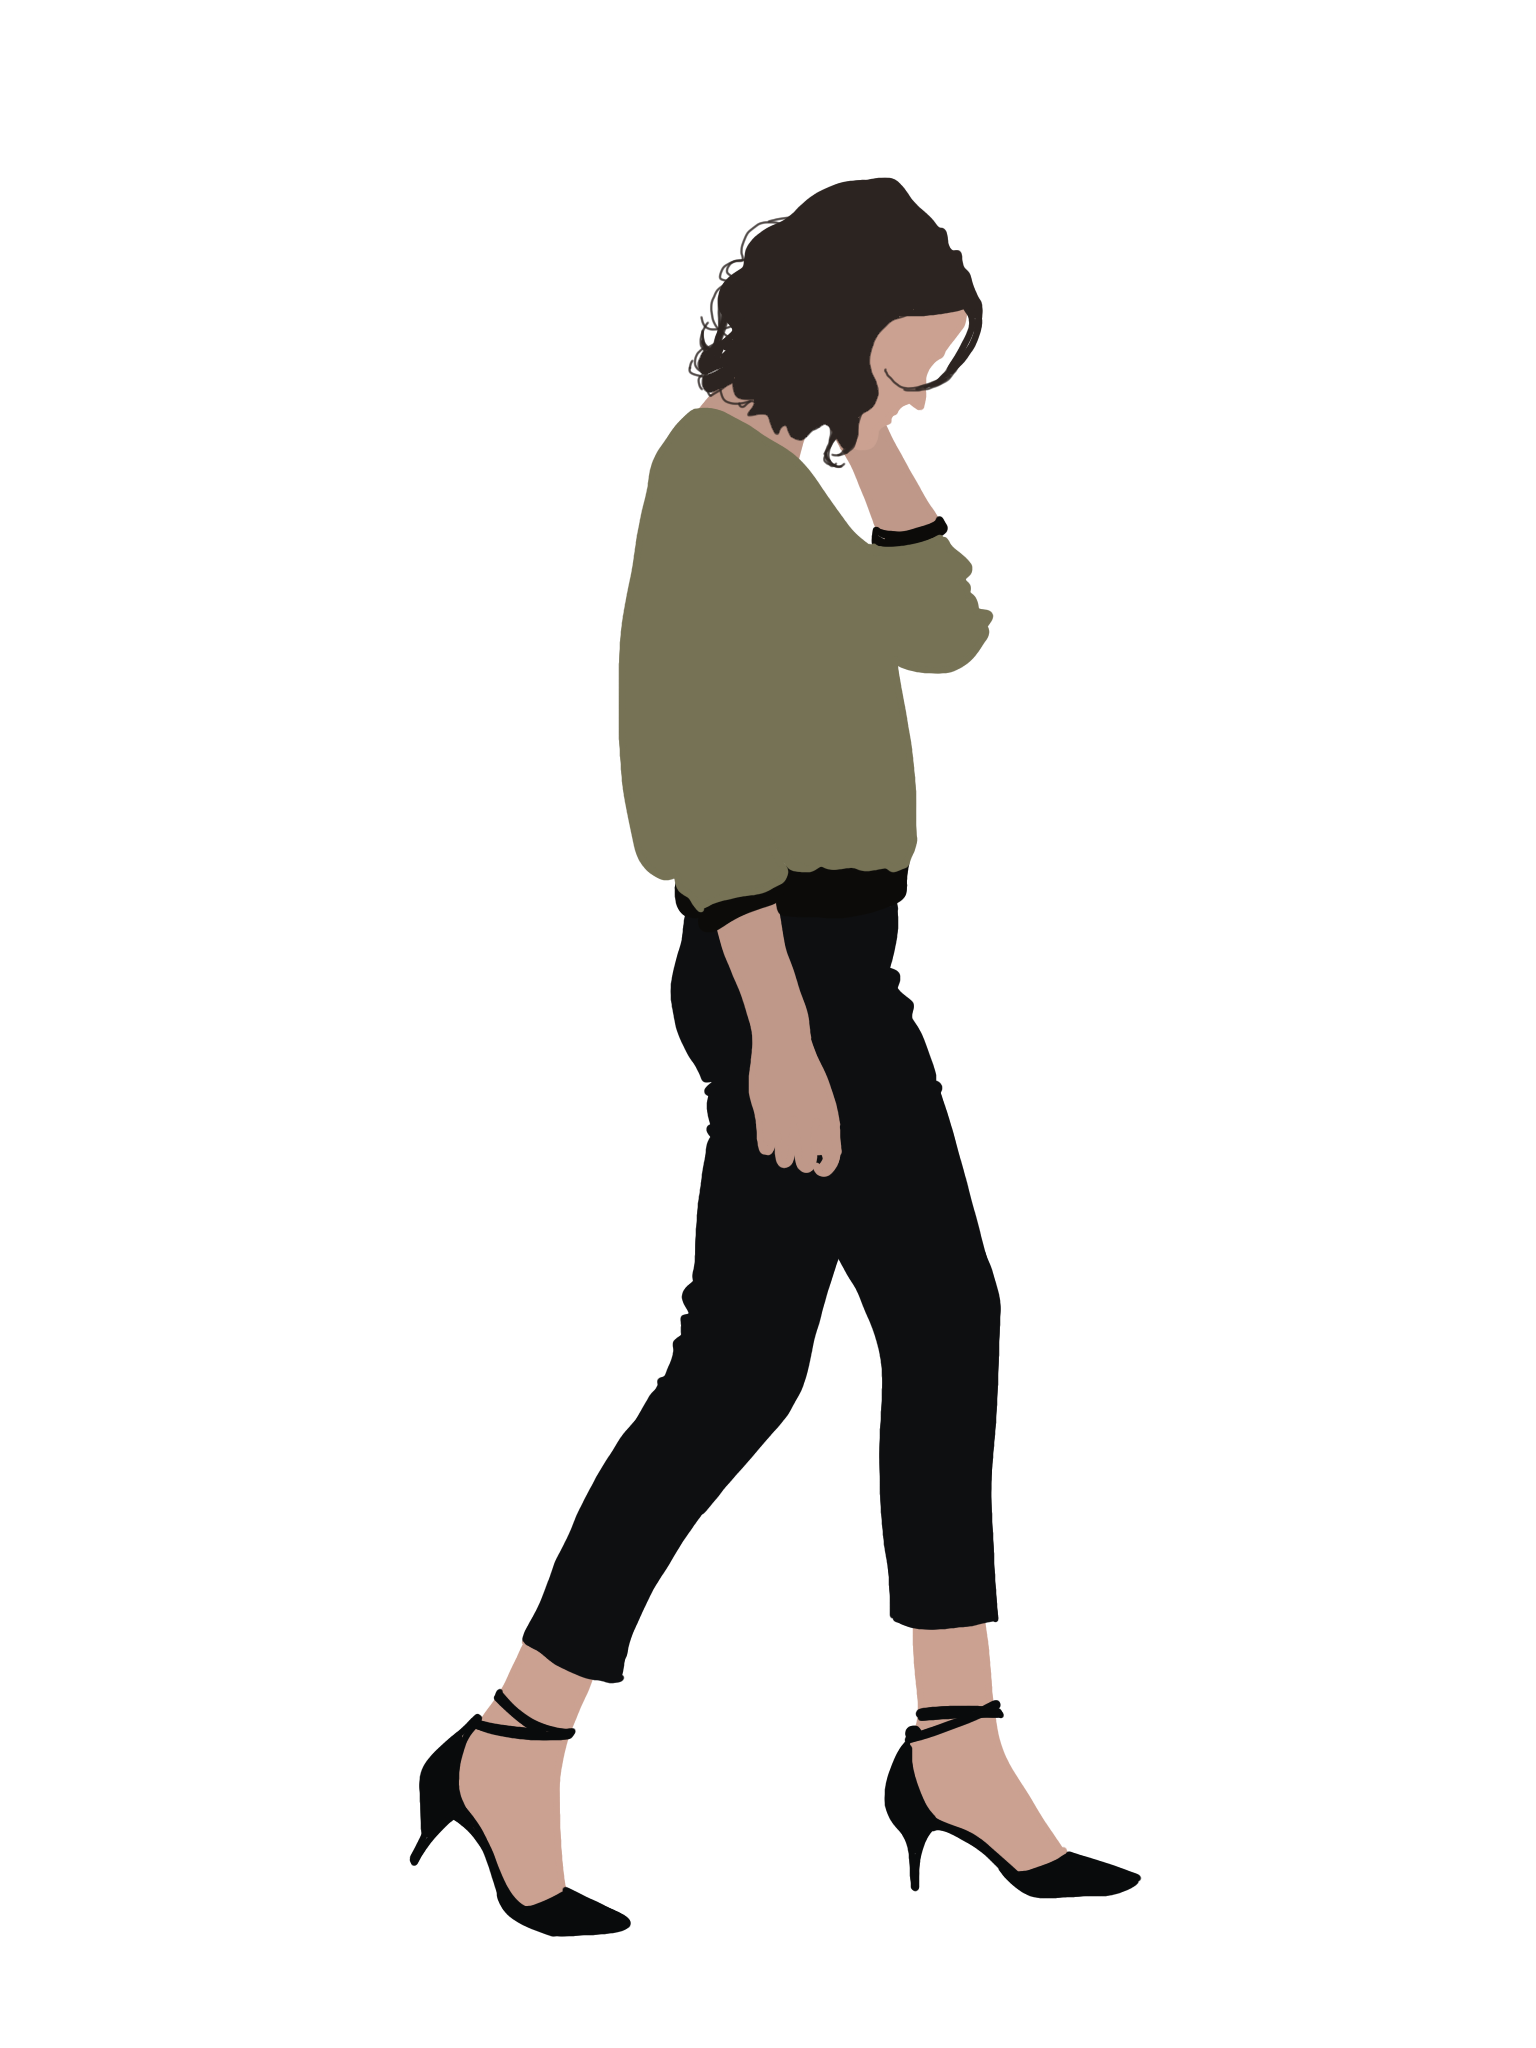 Human figure architecture png. People flat illustration on